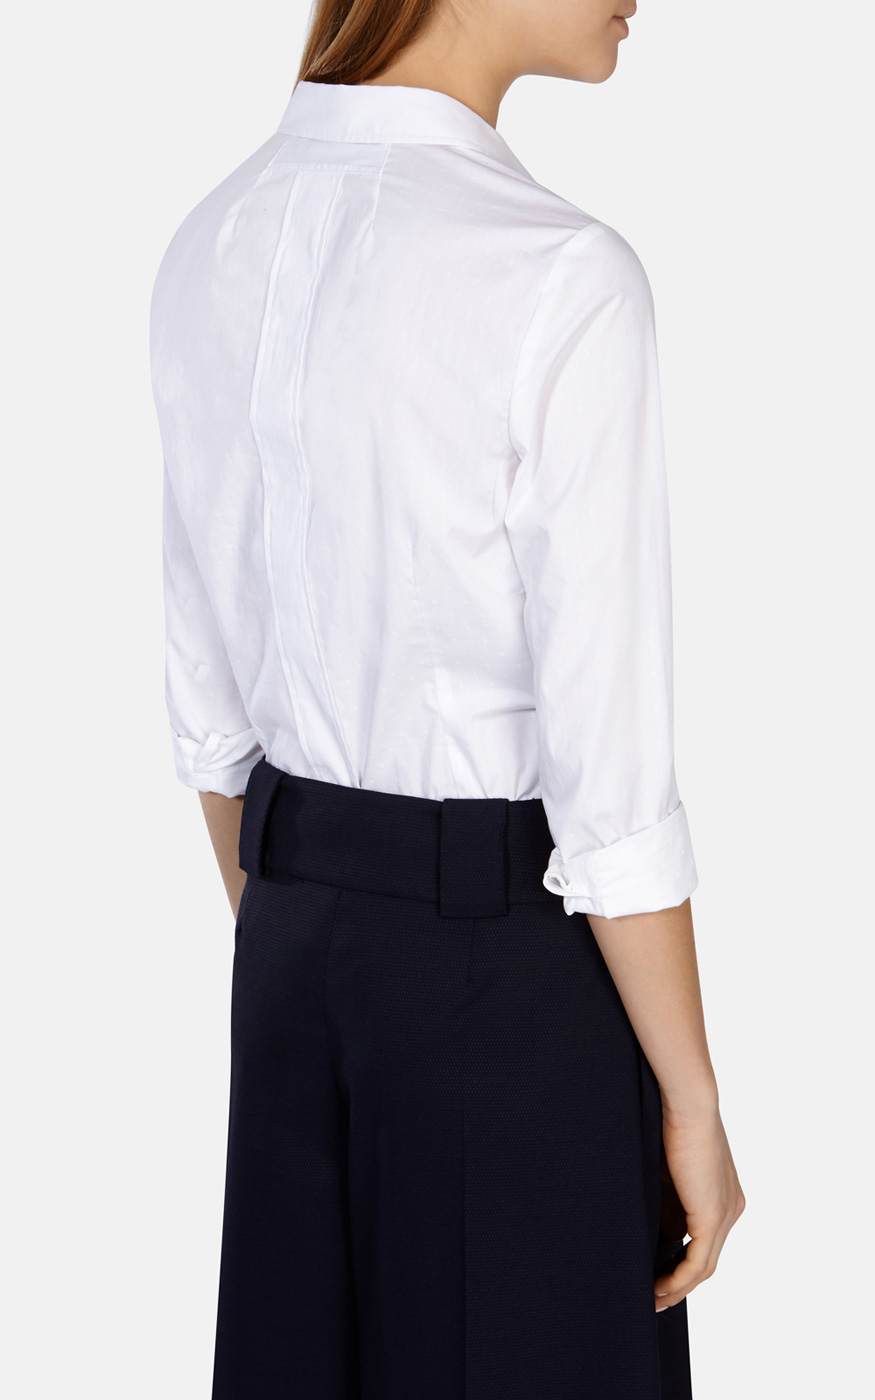 The tailored button-up shirt is available in white, blue and striped variations. It's your turn to look great every day with this collection of tops that stand out. There are slim fits which create a streamlined look or classic shapes for a tailored feel.